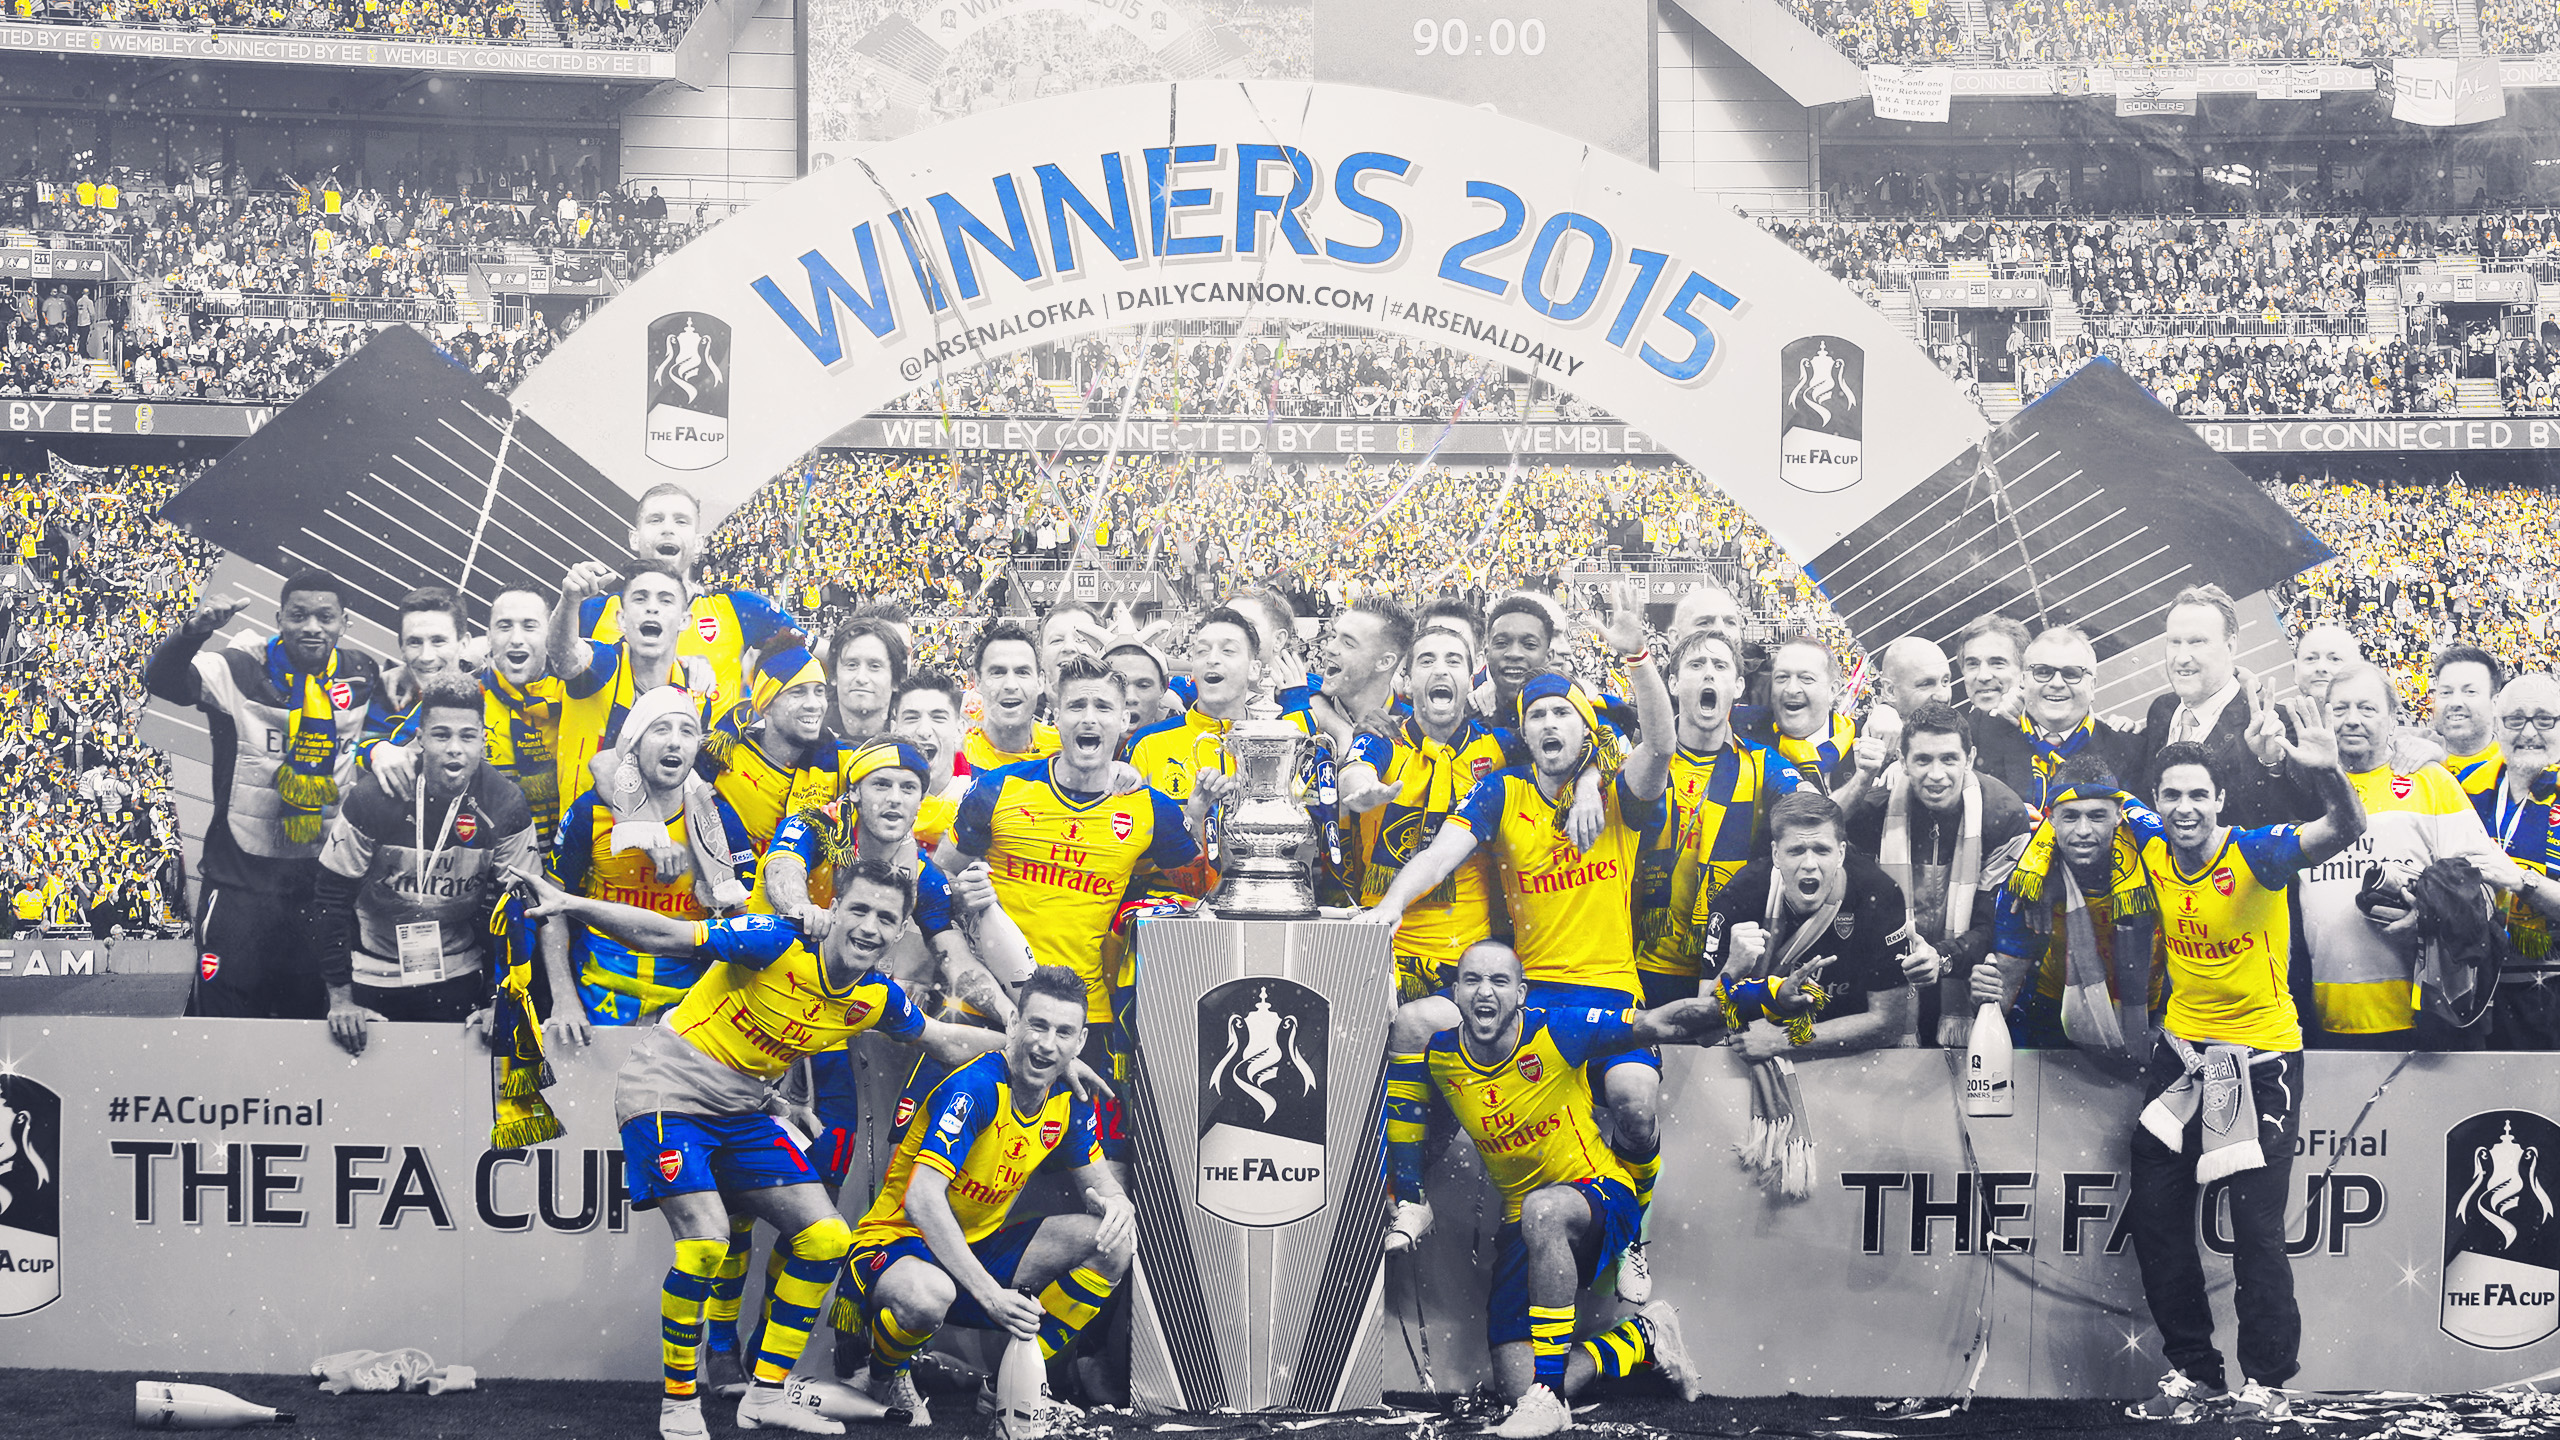 Exclusive Arsenal 2015 FA Cup Winners Wallpaper, Header